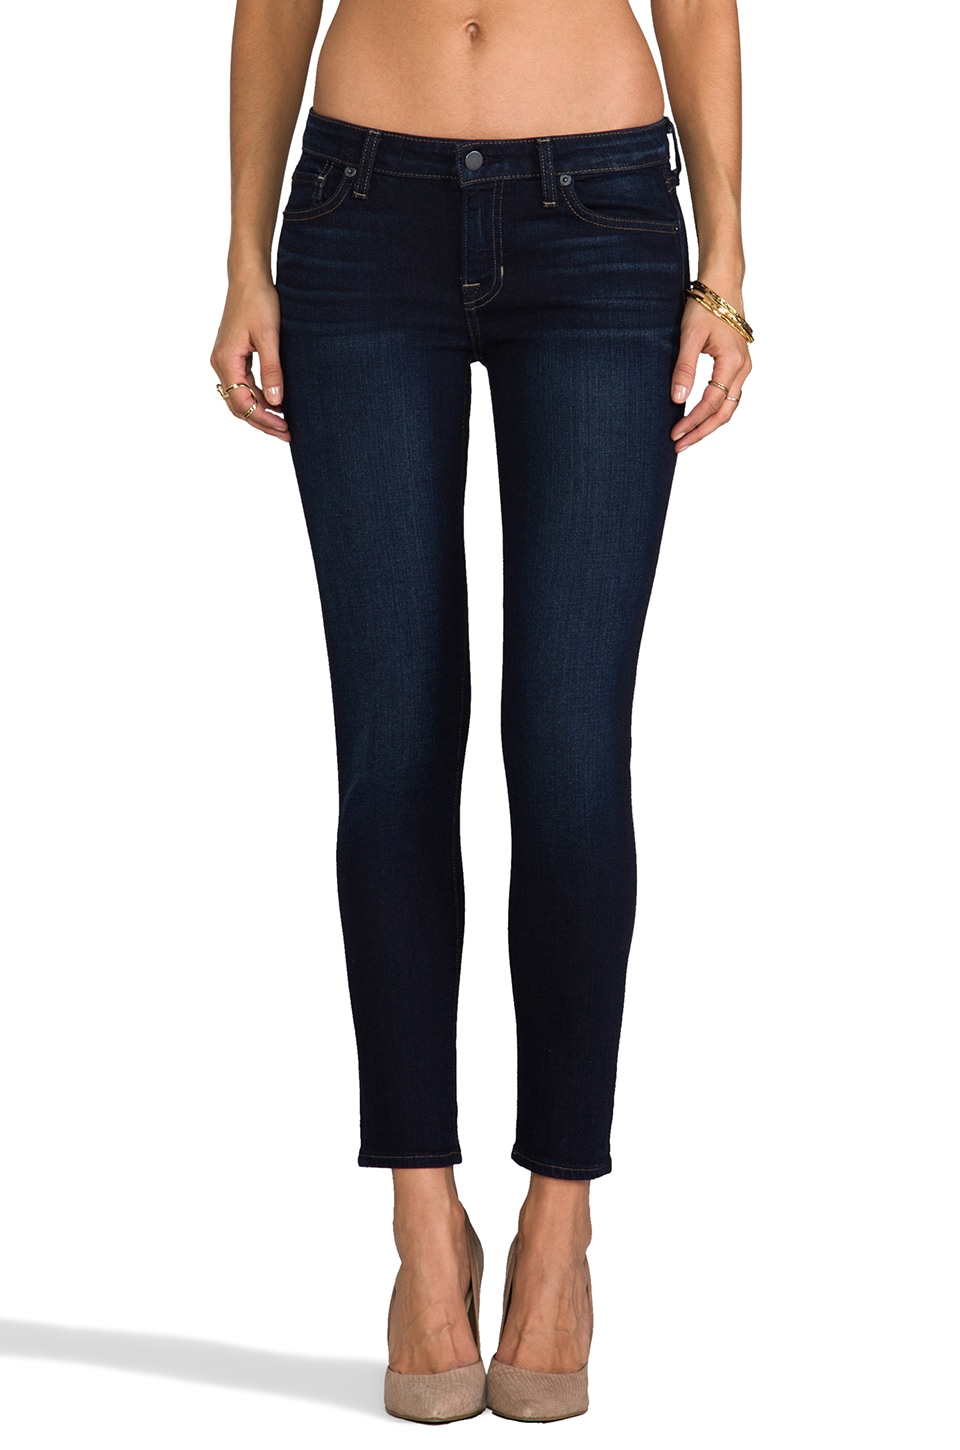 TEXTILE Elizabeth and James Ozzy Skinny in Sadie